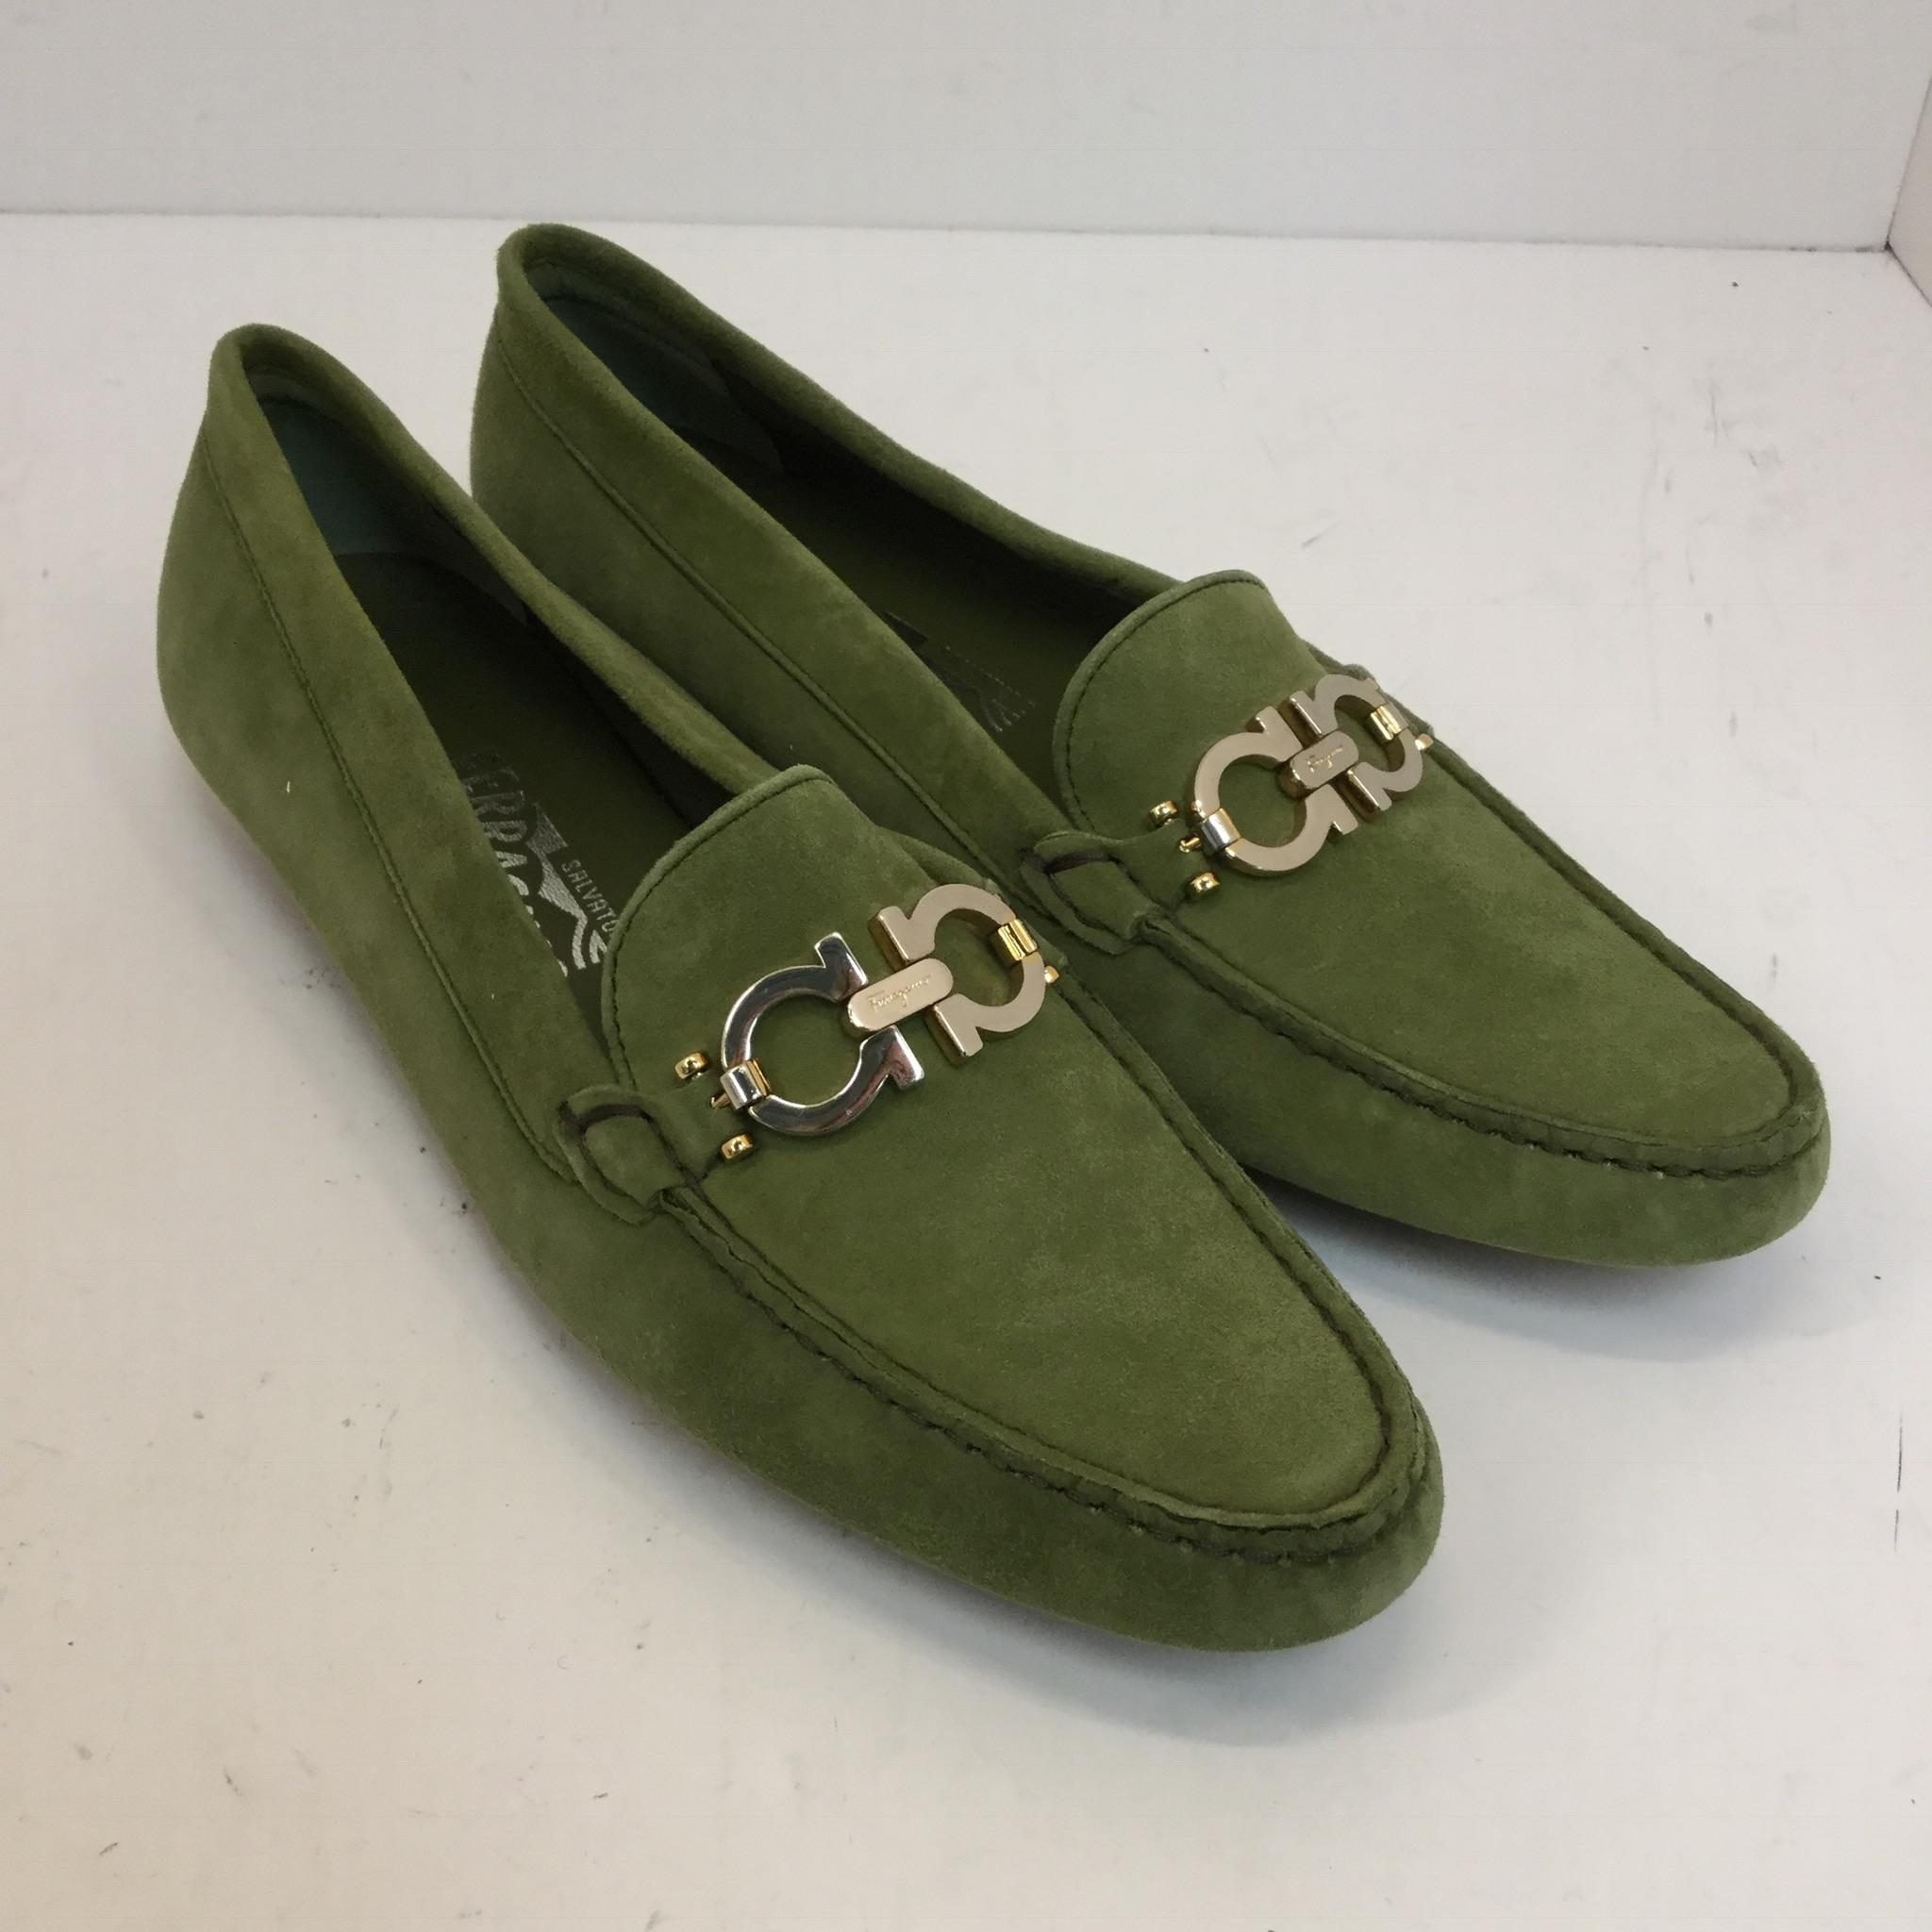 8808f55af12 ... Salvatore Ferragamo Green Suede Horsebit Driving Driving Driving  Loafers - Aa Flats Size US 8.5 Narrow ...